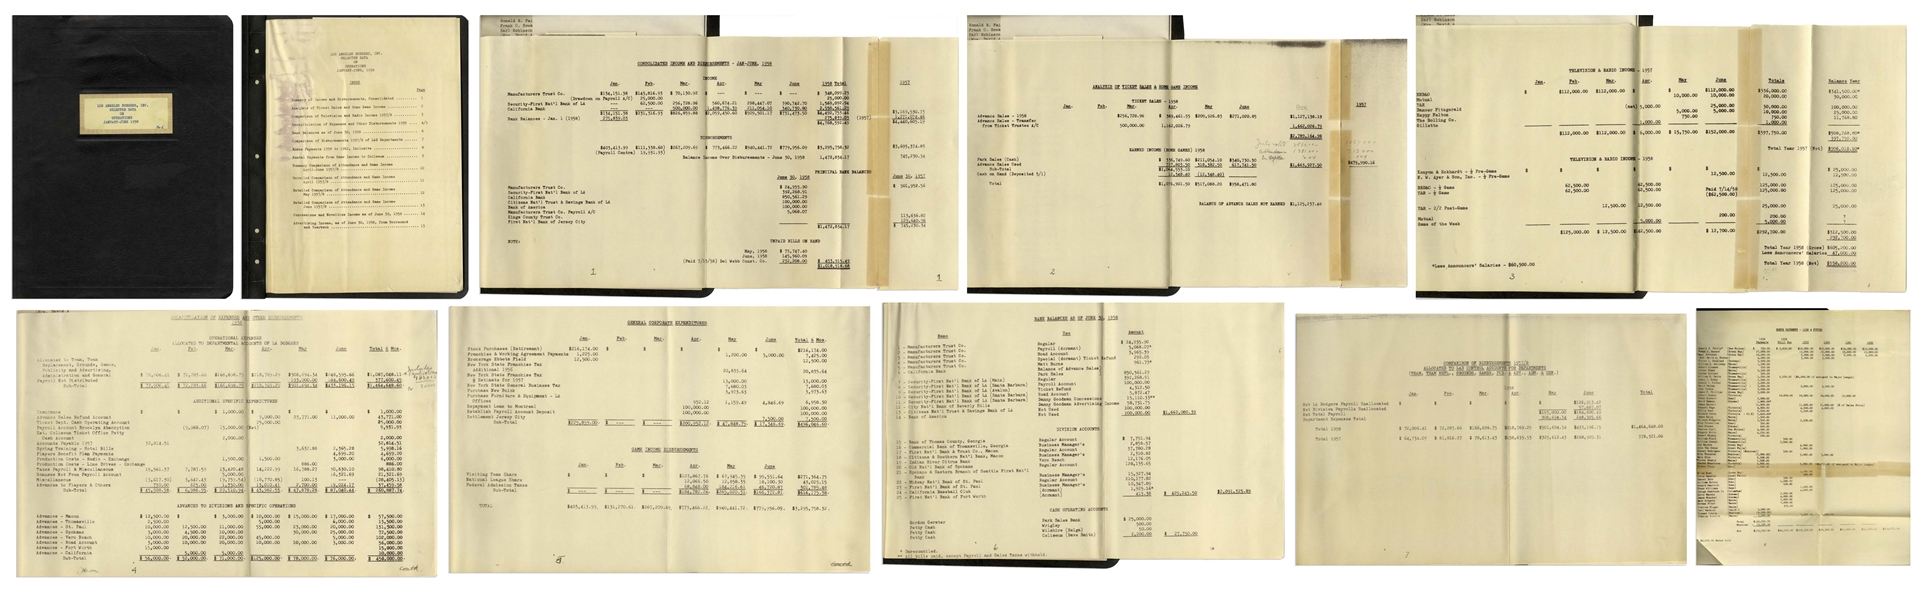 Lot of 55 Official Financial Ledgers for the Dodgers From 1924-1965 -- Covering Their Move to LA From Brooklyn, Player Salaries, Ticket Sales, Manager & Scout Salaries, Player ''Depreciation'' & More